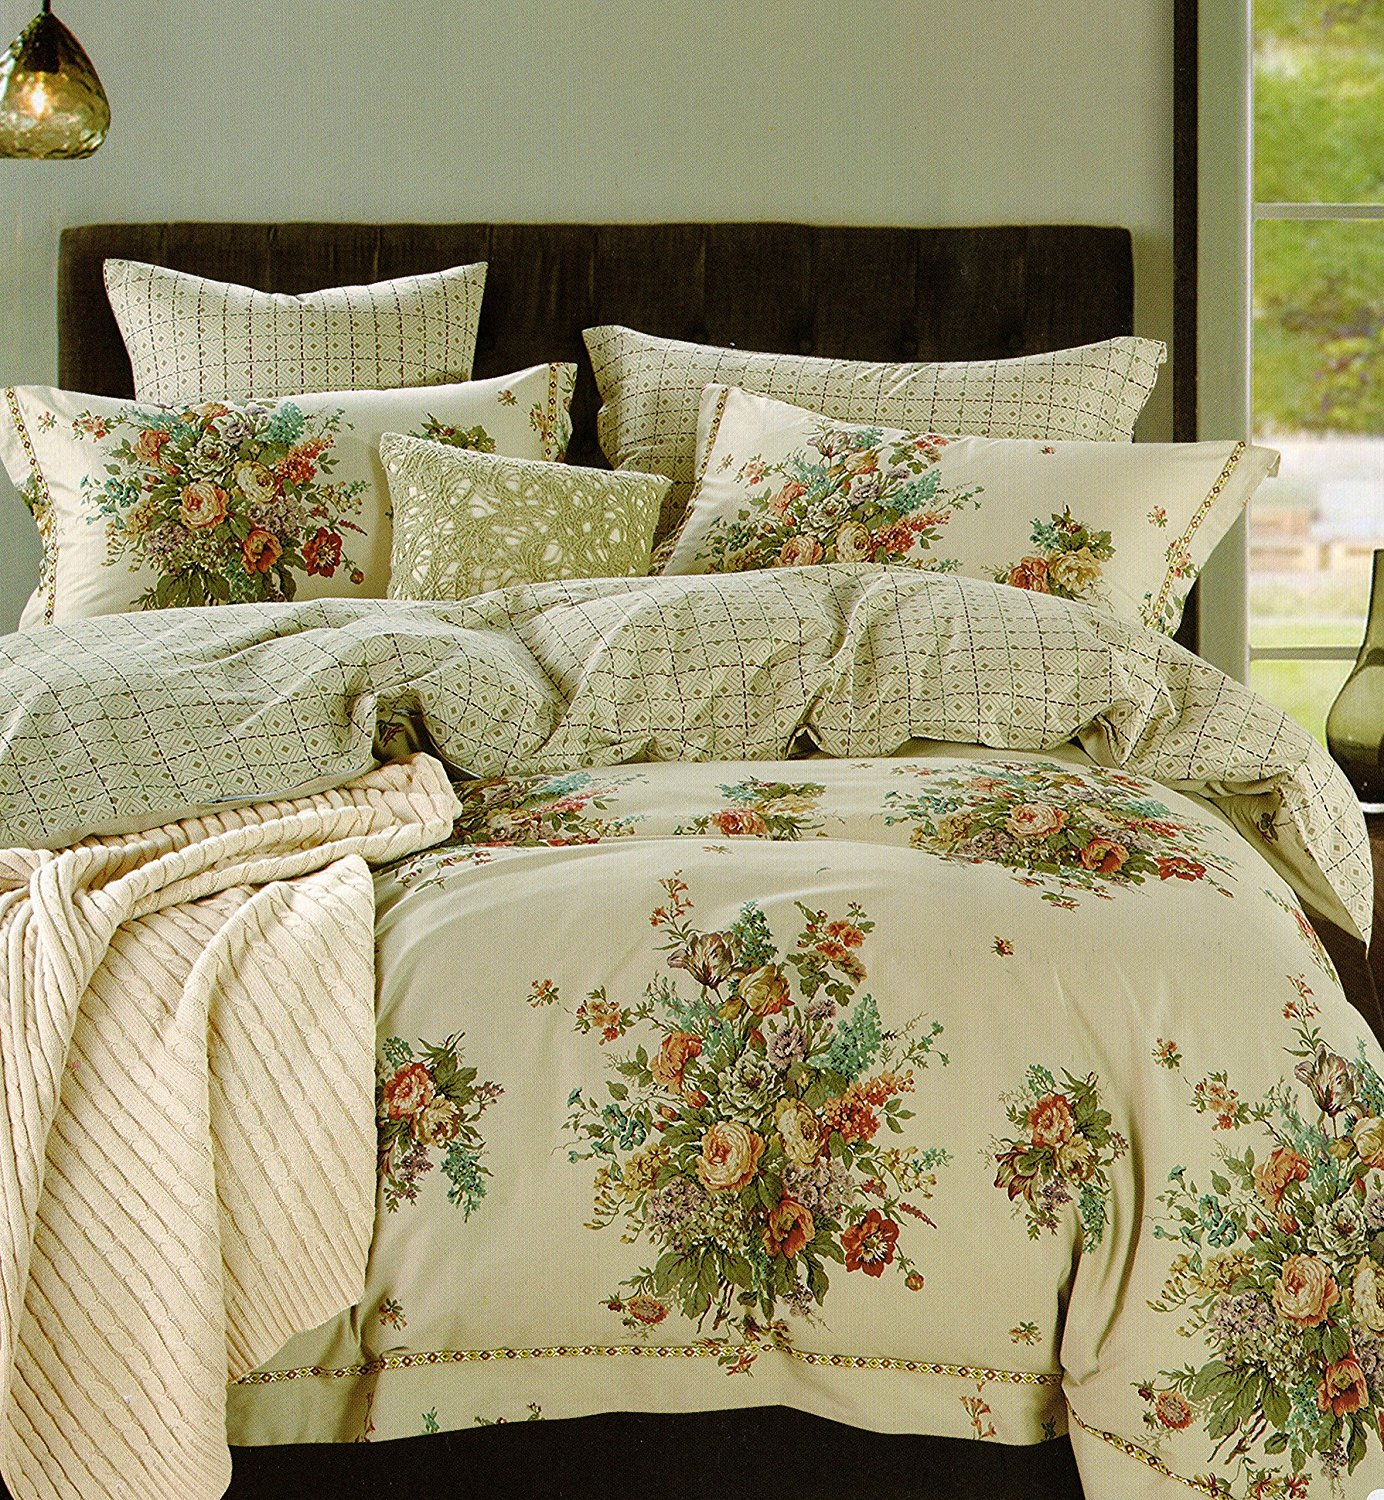 Cottage Country Roses Peonies Bouquet Duvet Cover Set